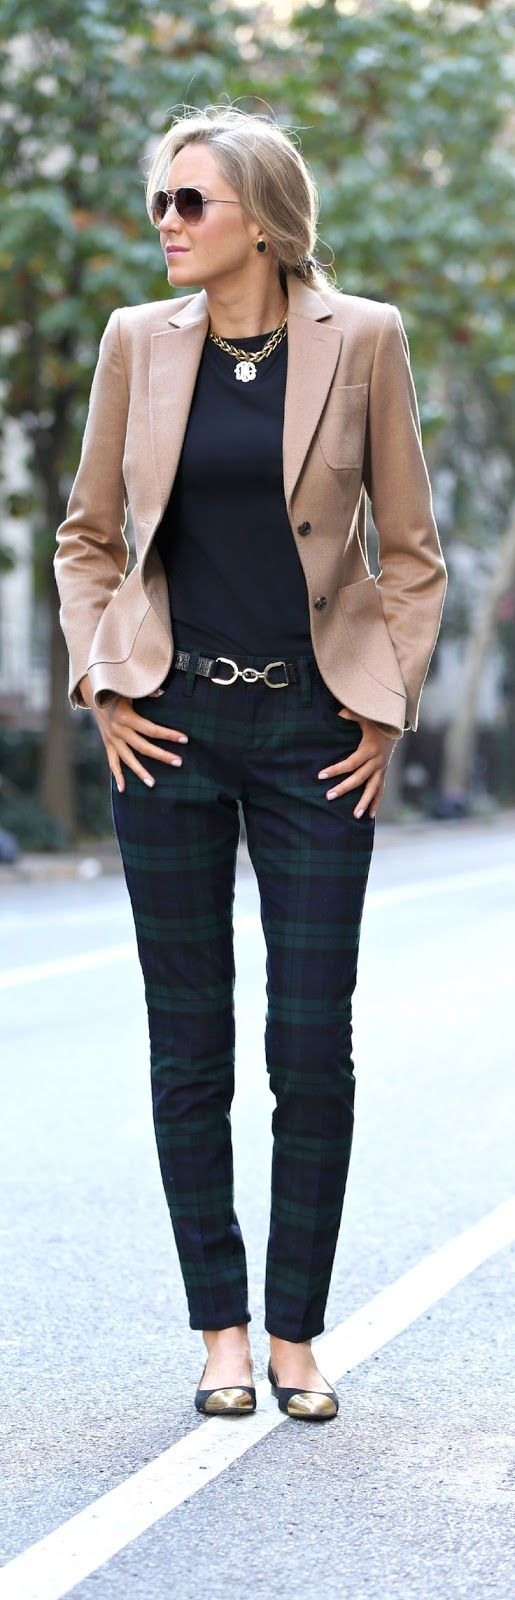 Curating Fashion & Style: Office look | Tartan pants, flats, golden accessories and camel blazer